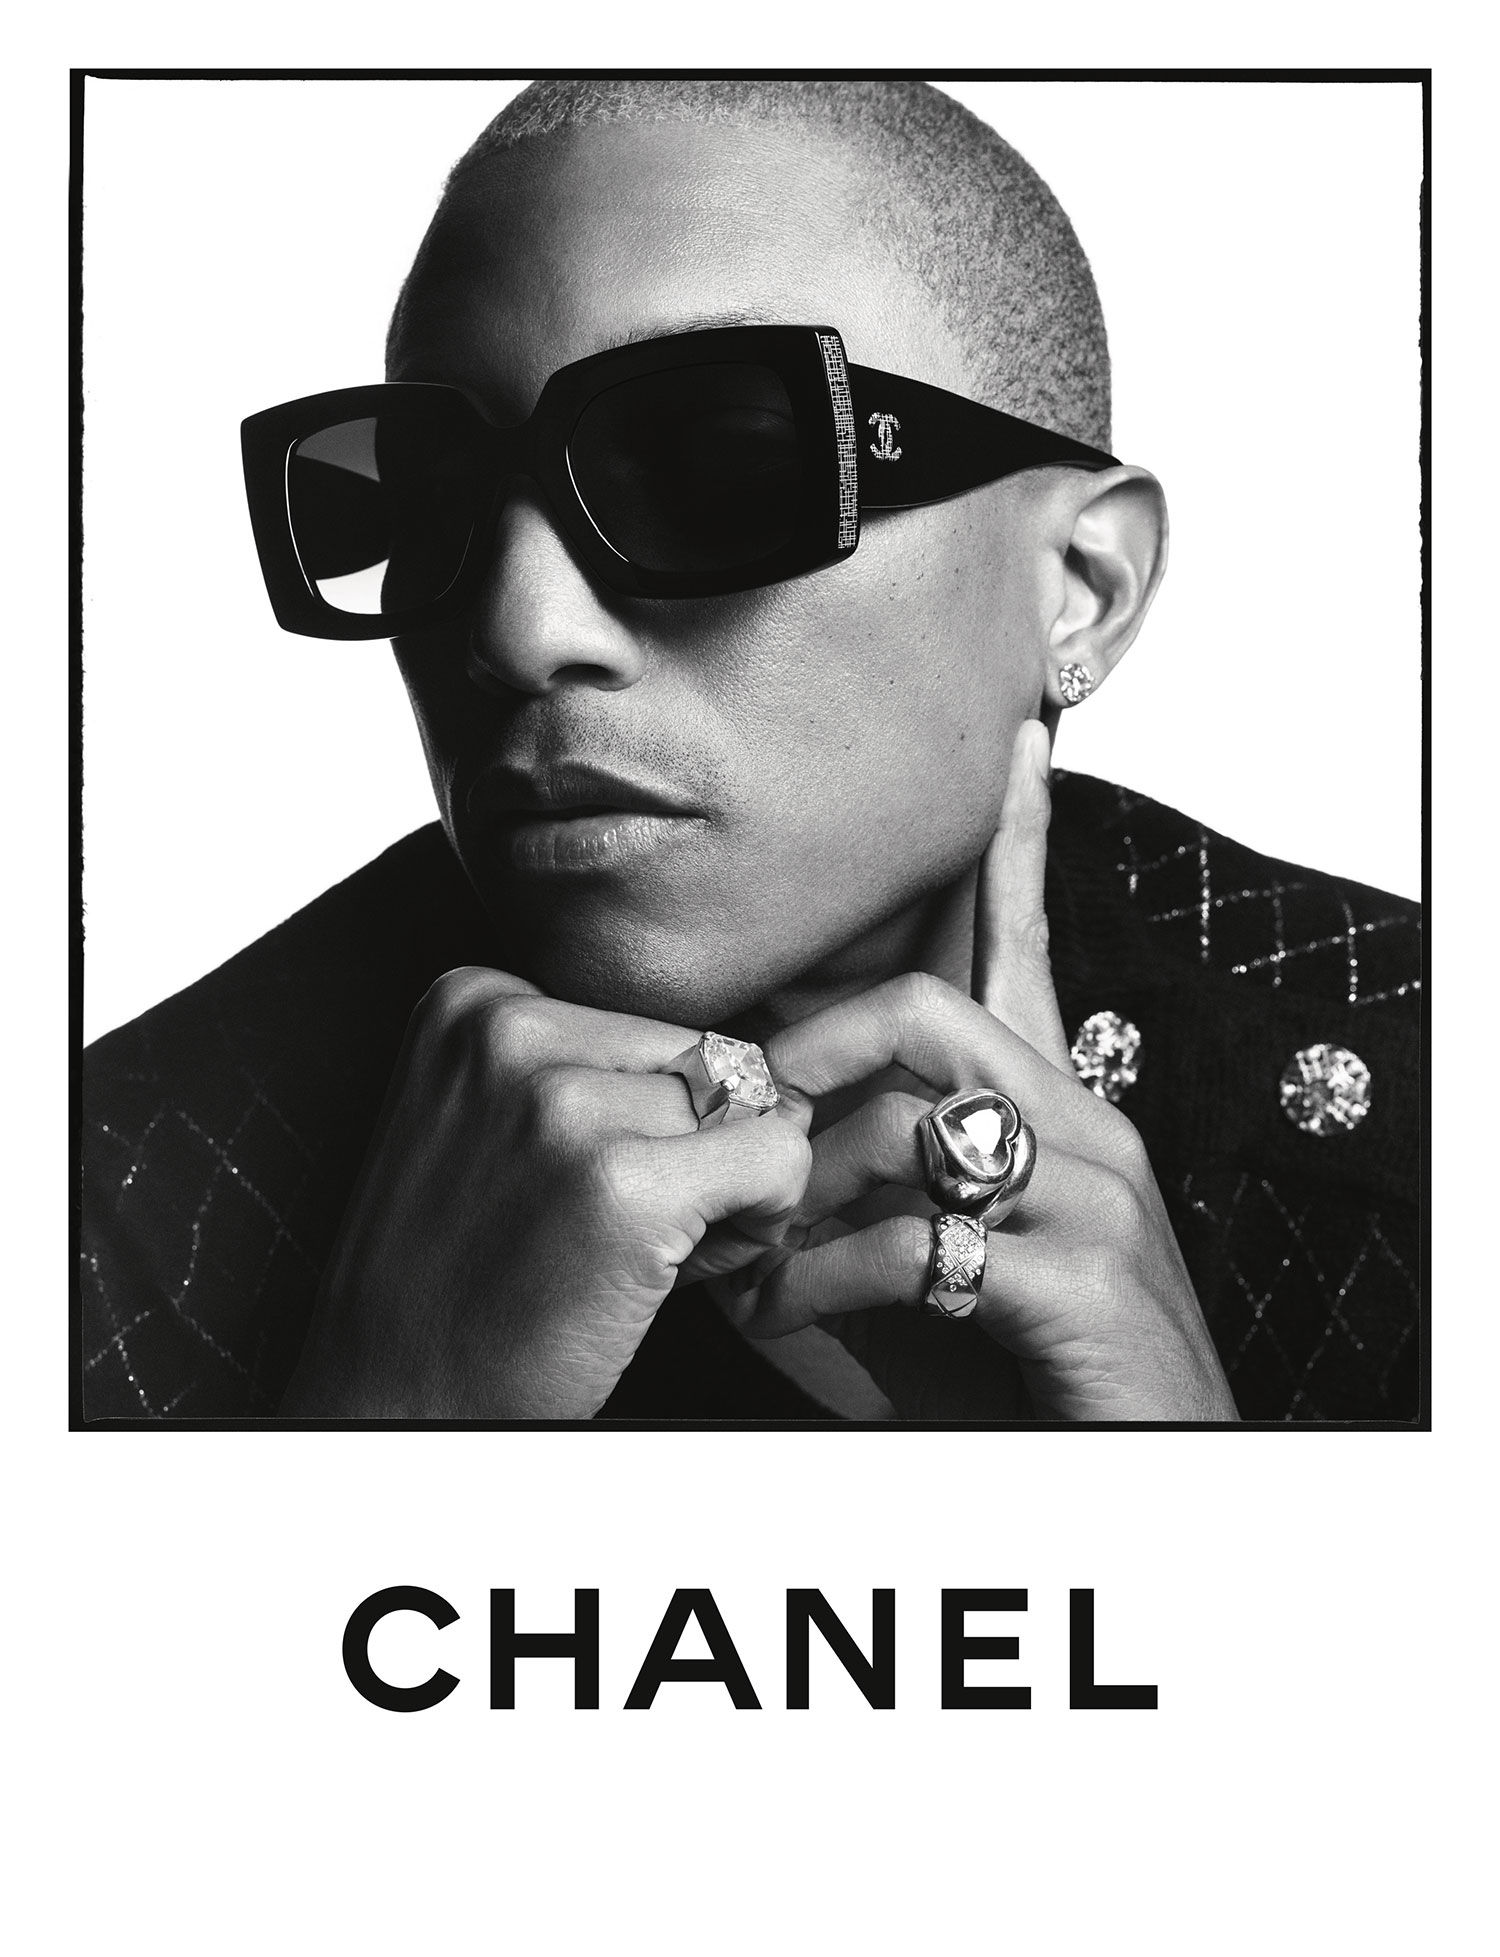 BST kính mắt Chanel Xuân - Hè 2020 Pharrell Williams